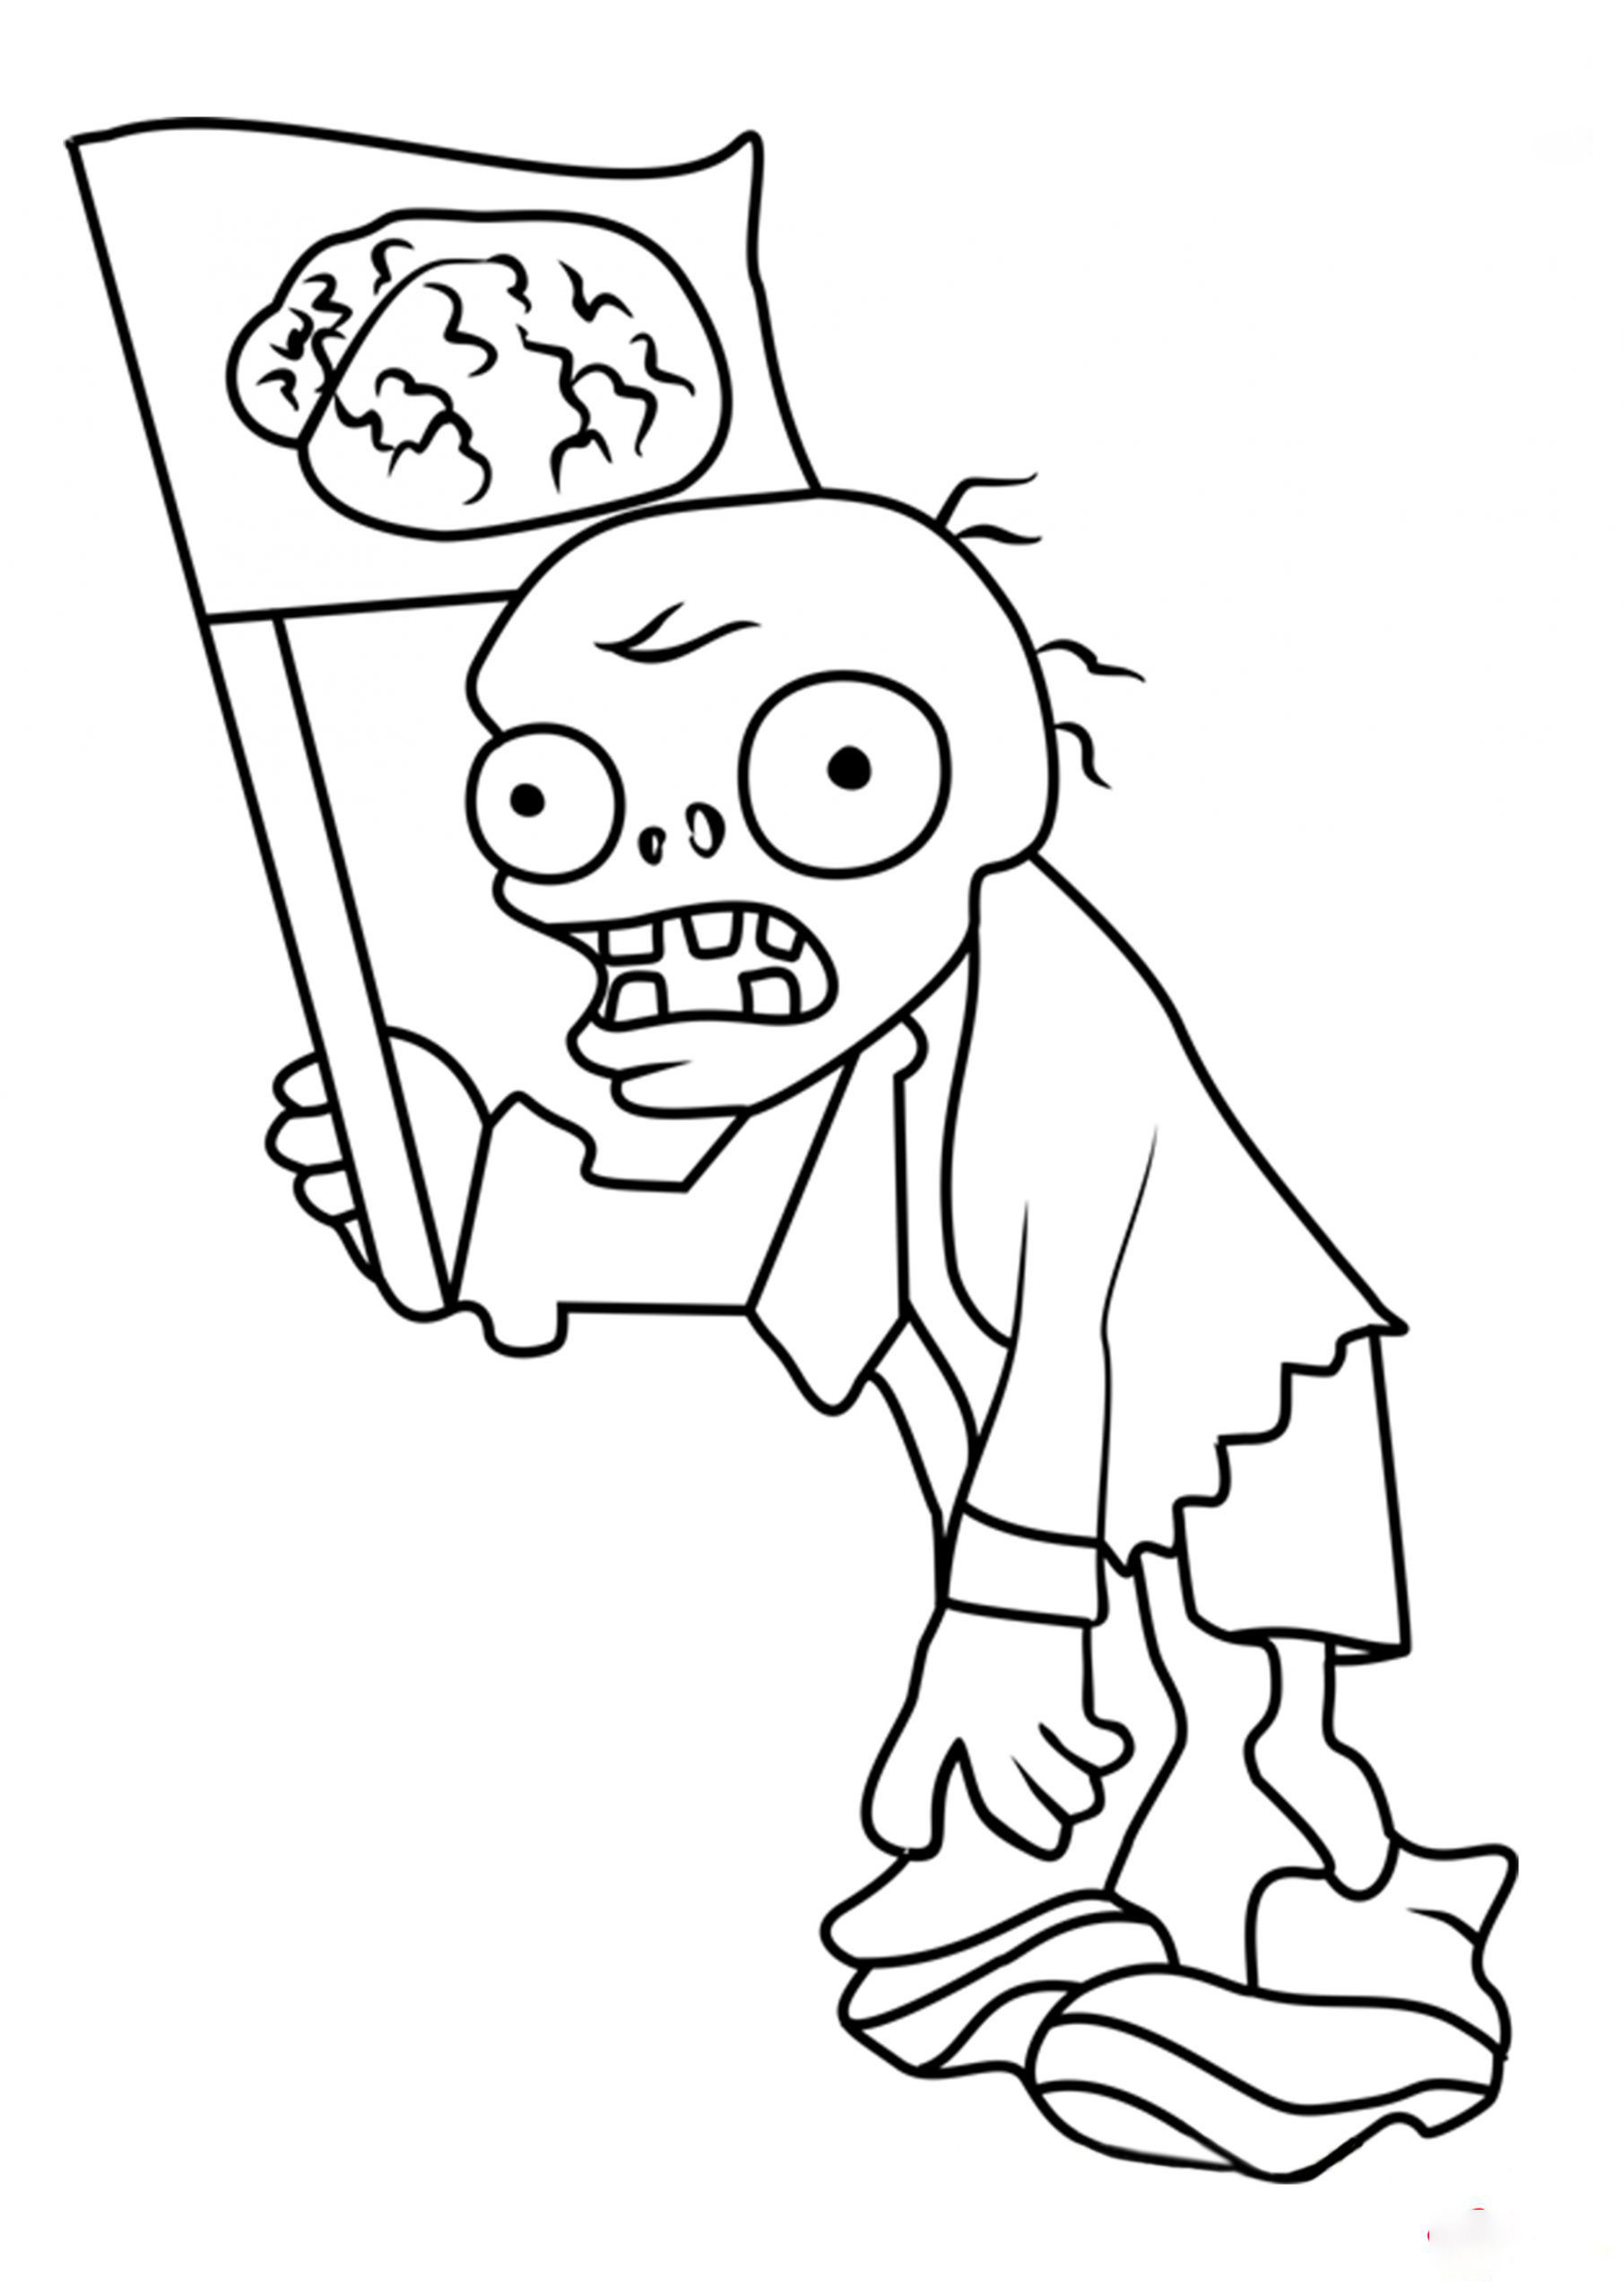 Flag Zombie Coloring Page